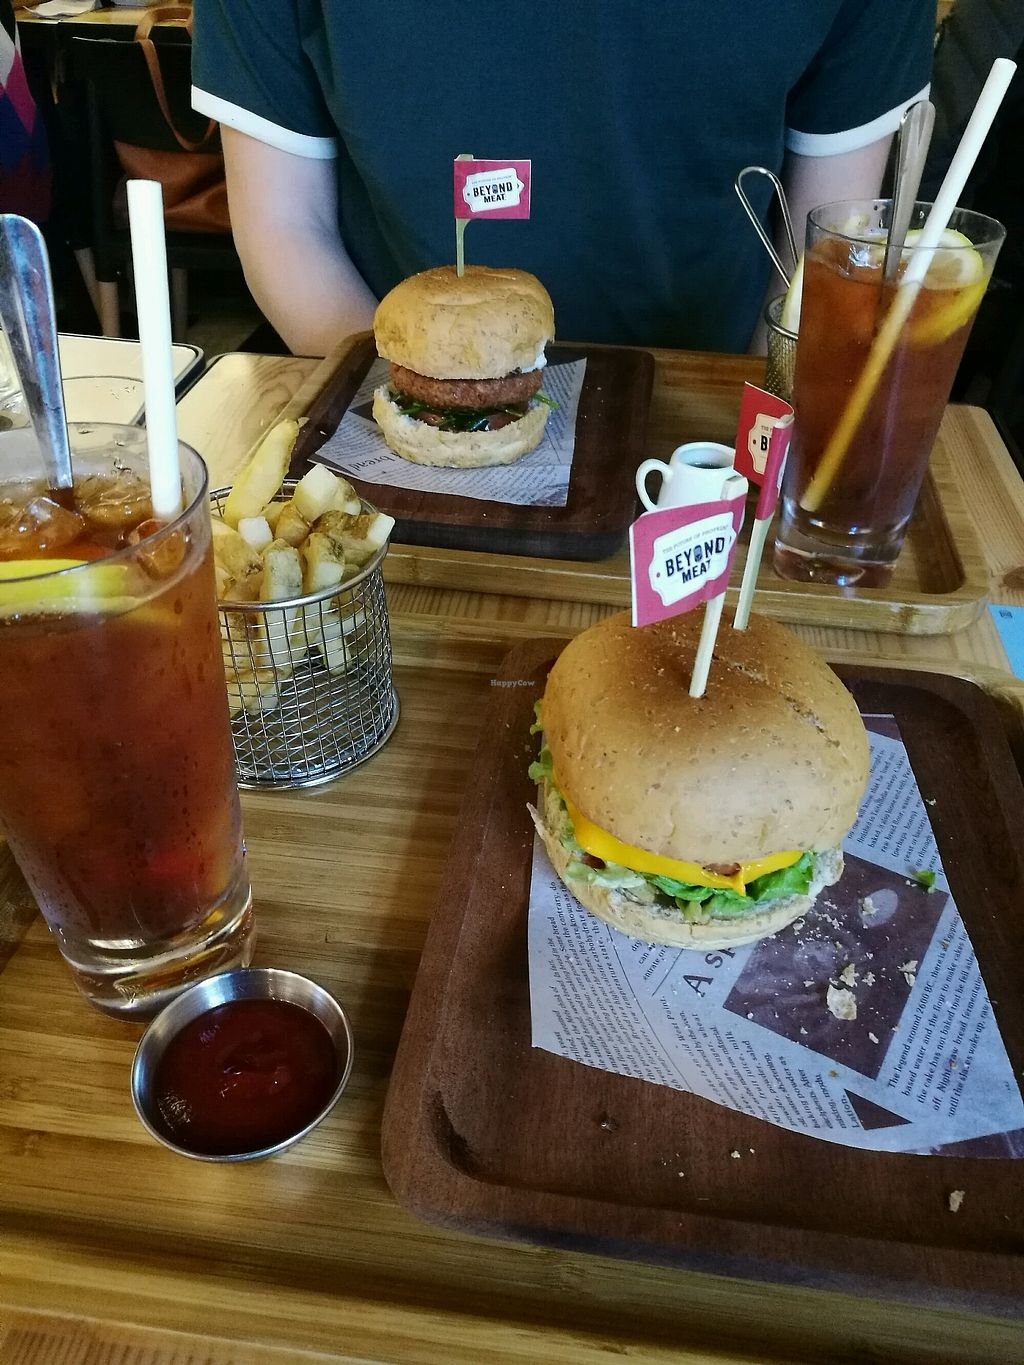 "Photo of Green Common - Tsim Sha Tsui  by <a href=""/members/profile/SarahHartland"">SarahHartland</a> <br/>Beyond burger <br/> March 6, 2018  - <a href='/contact/abuse/image/83392/367403'>Report</a>"